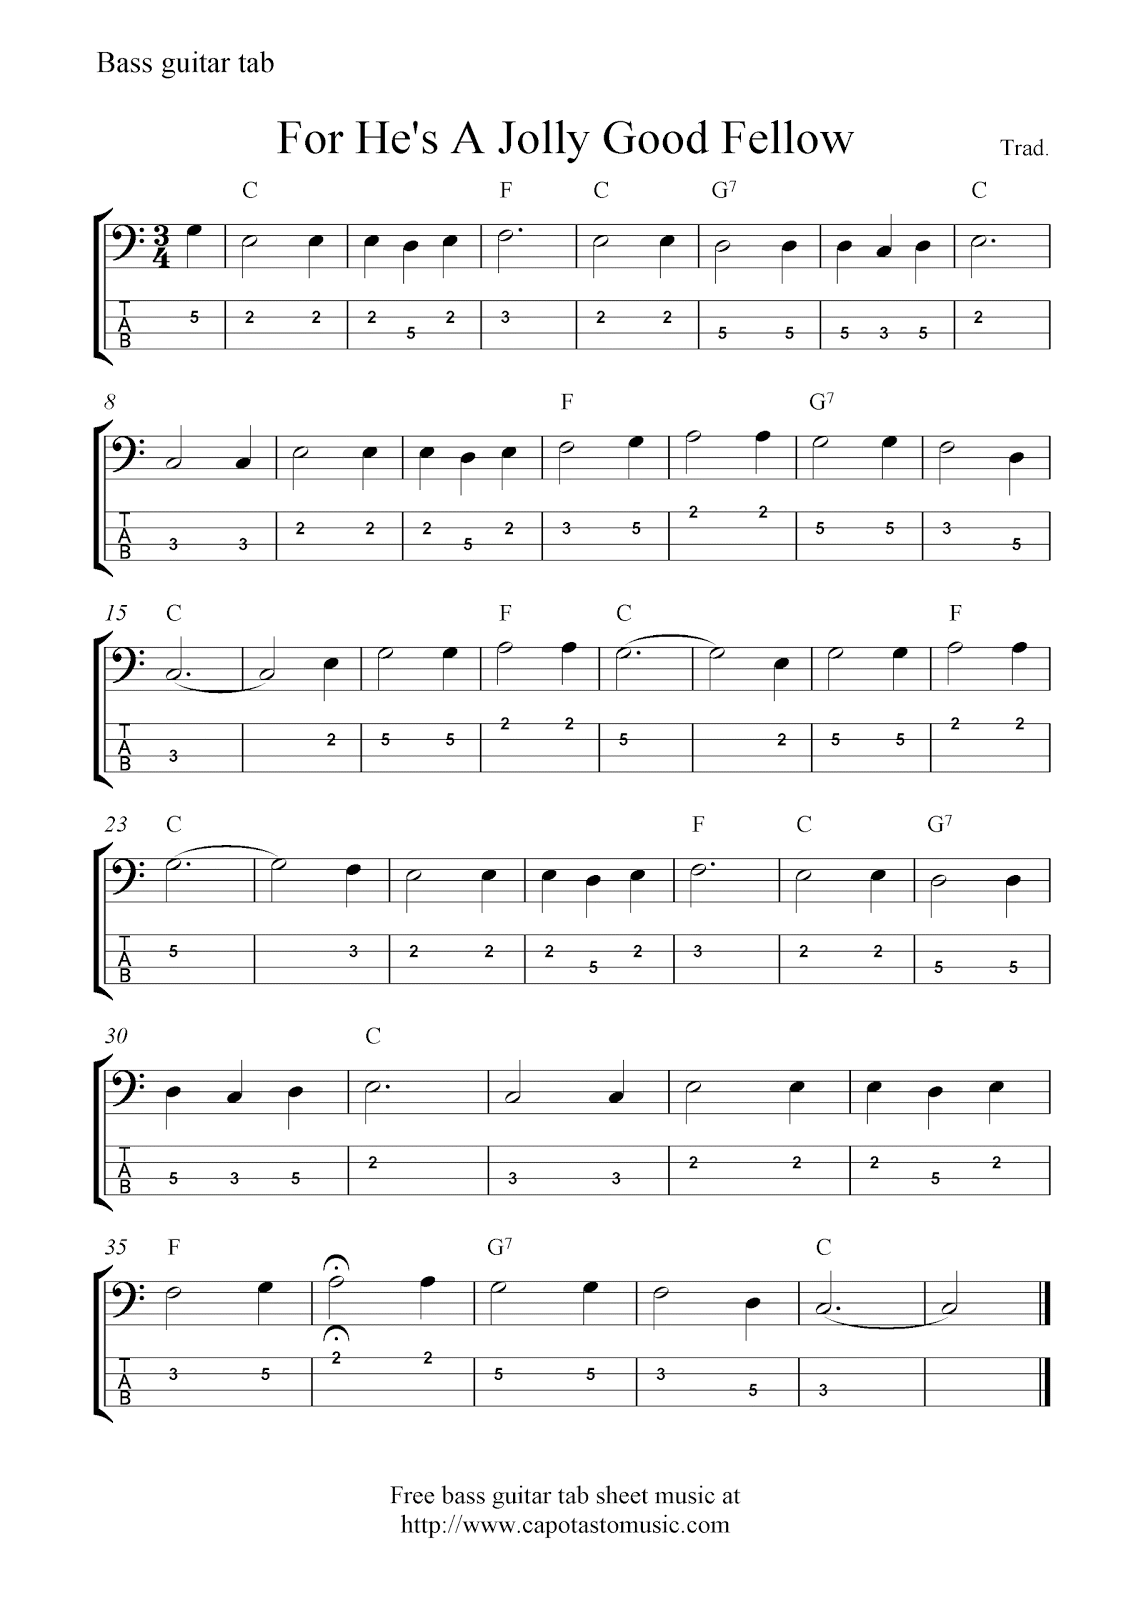 Bass tabs bruce thomas free bass guitar tab sheet music for hes a jolly good fellow hexwebz Choice Image